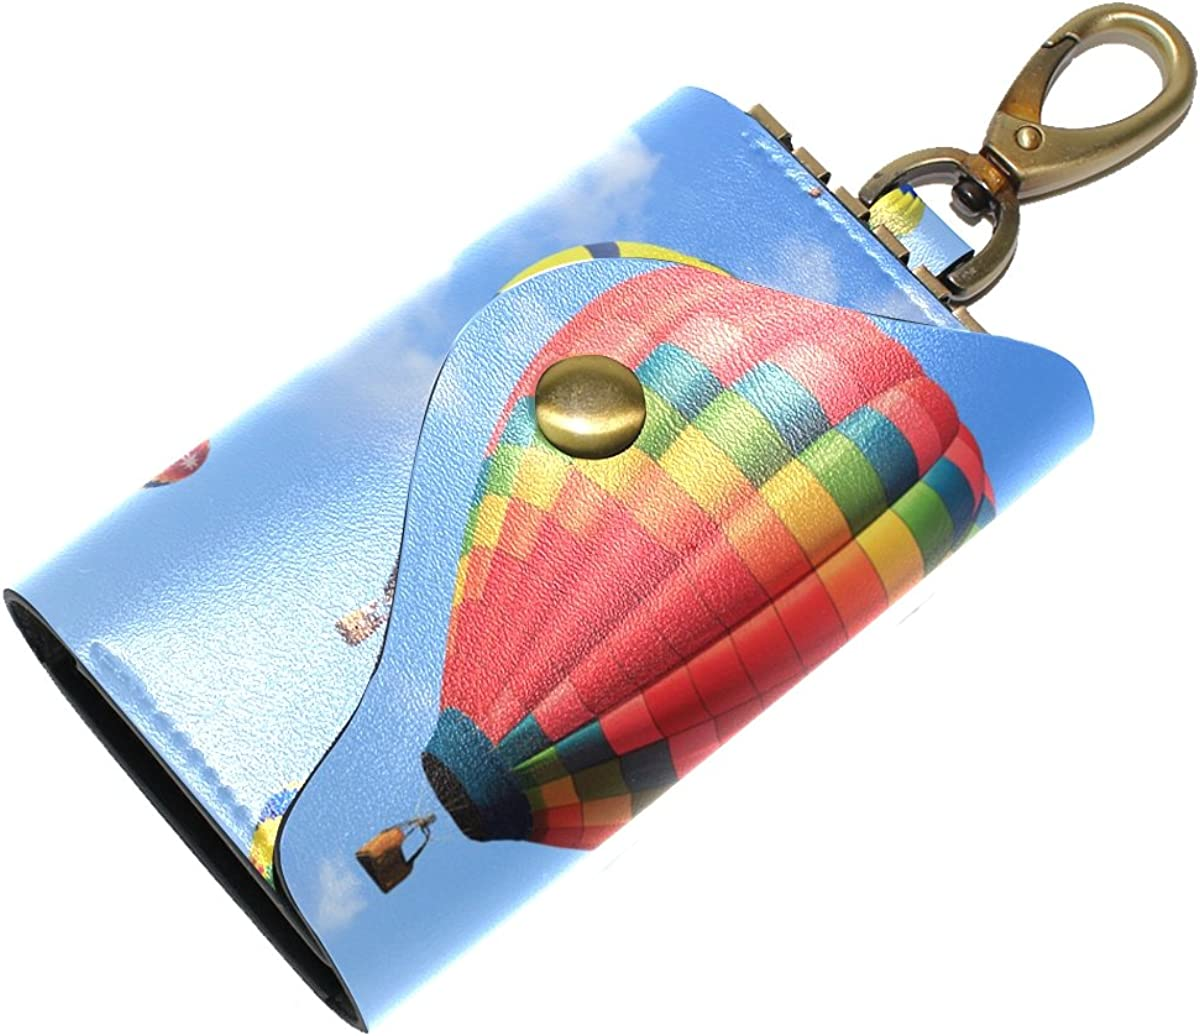 DEYYA Hot Air Balloon Leather Key Case Wallets Unisex Keychain Key Holder with 6 Hooks Snap Closure